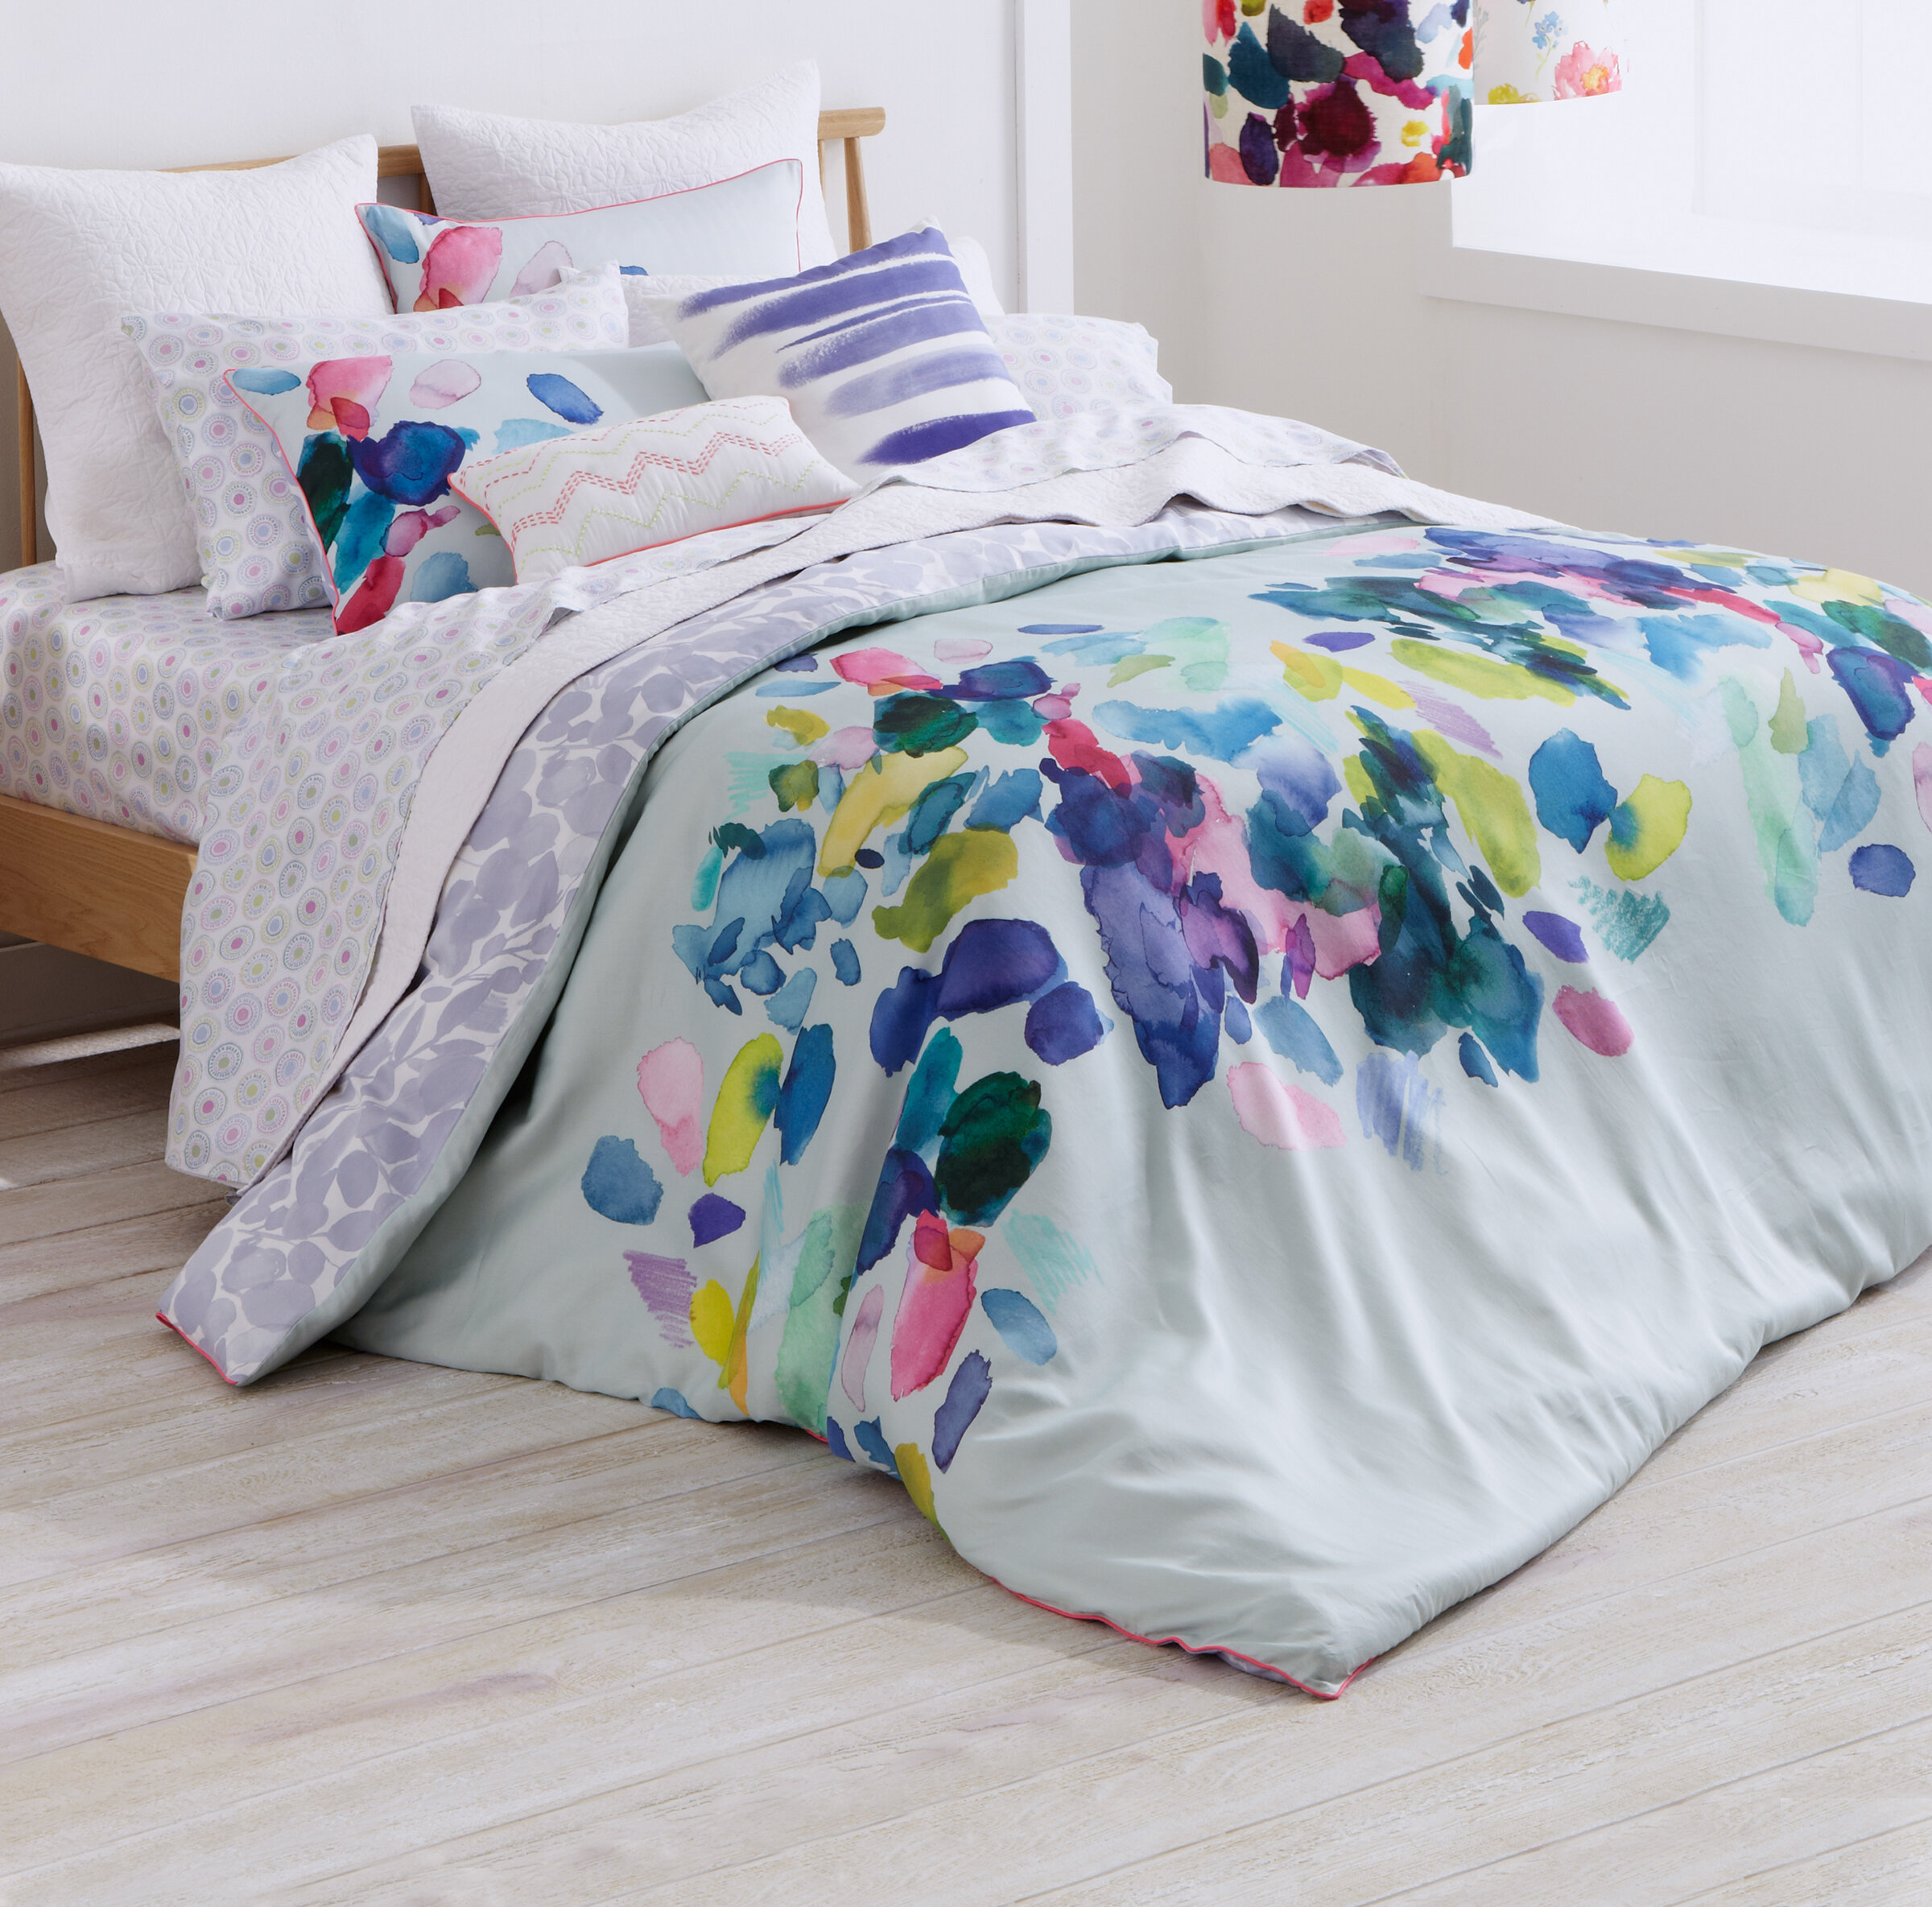 Bluebellgray Palette 100% Cotton Bedding Set U0026 Reviews | Wayfair